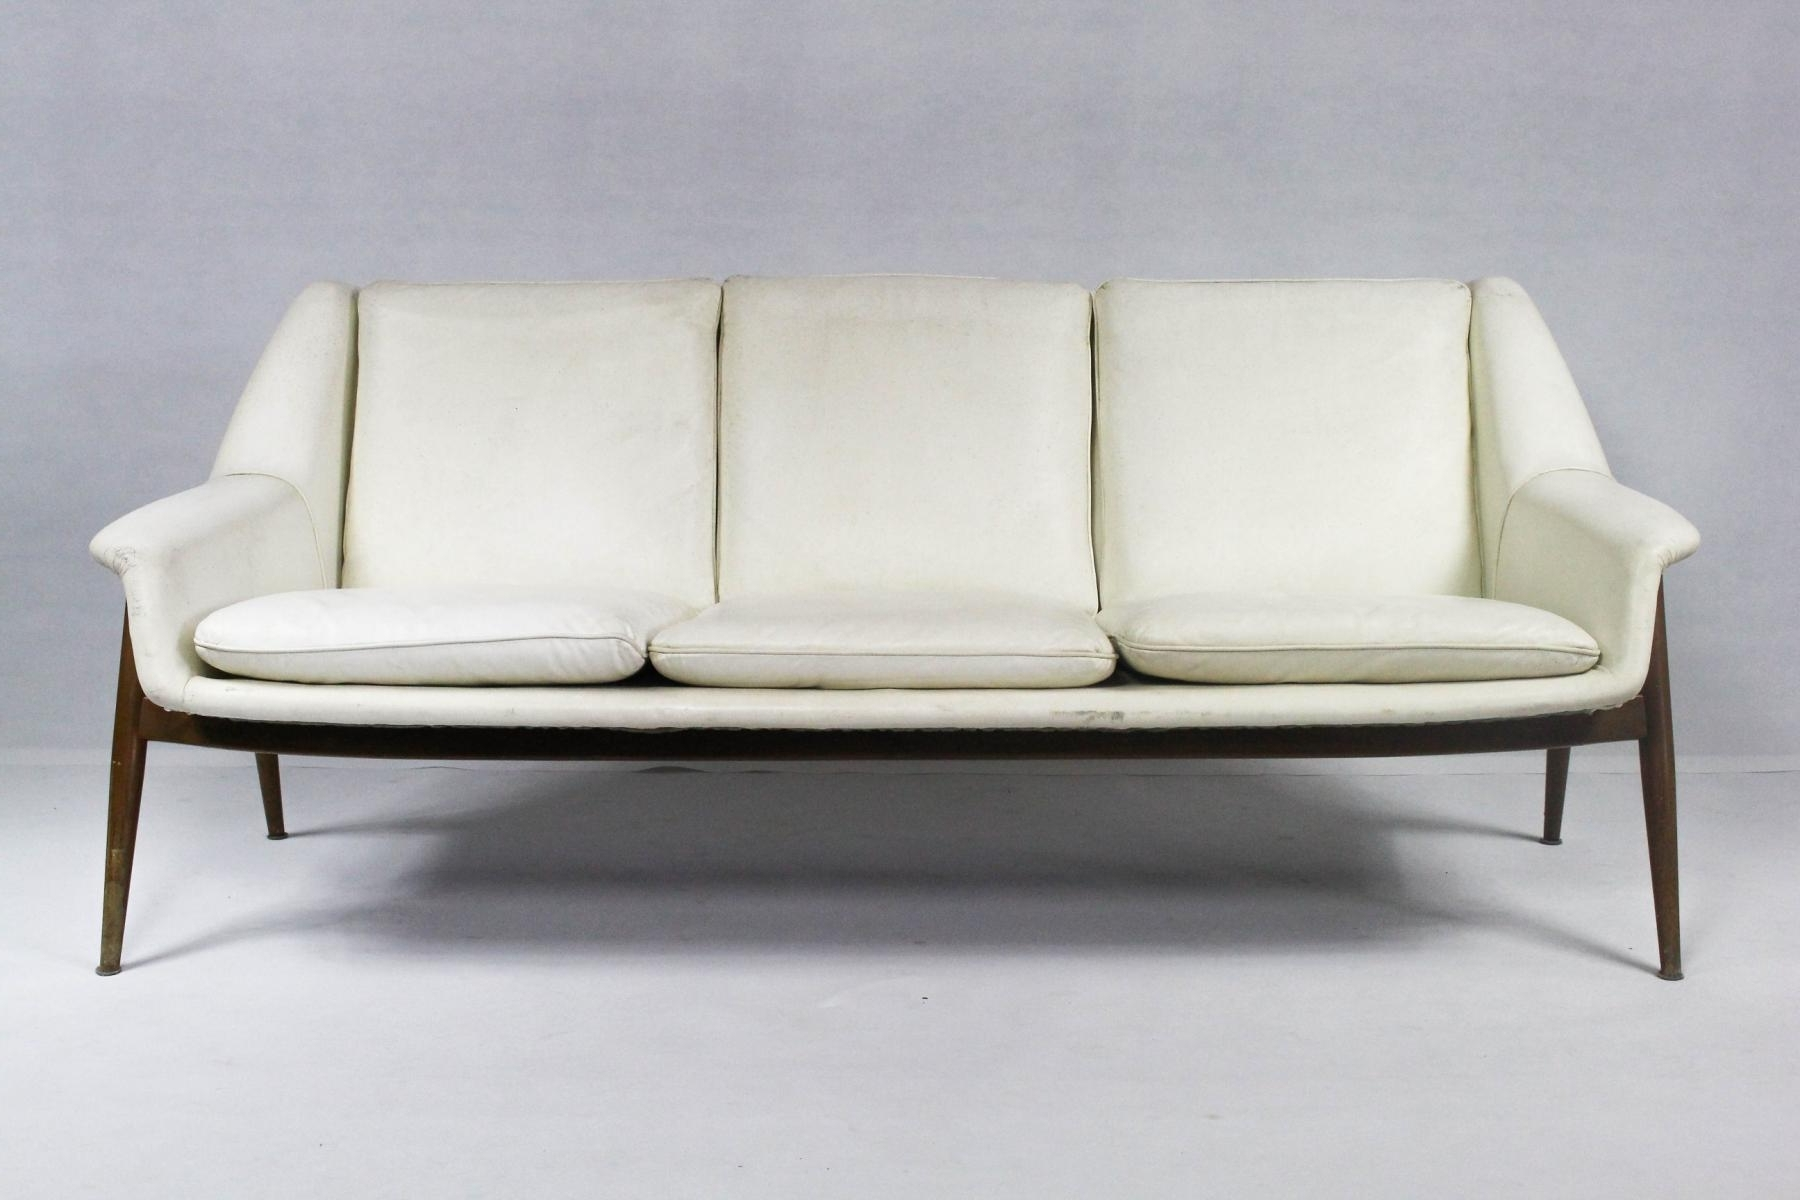 Sofa Modernr Ideas For Living Room Hupehome Contemporary Furniture For Fashionable High Point Nc Sectional Sofas (View 15 of 20)